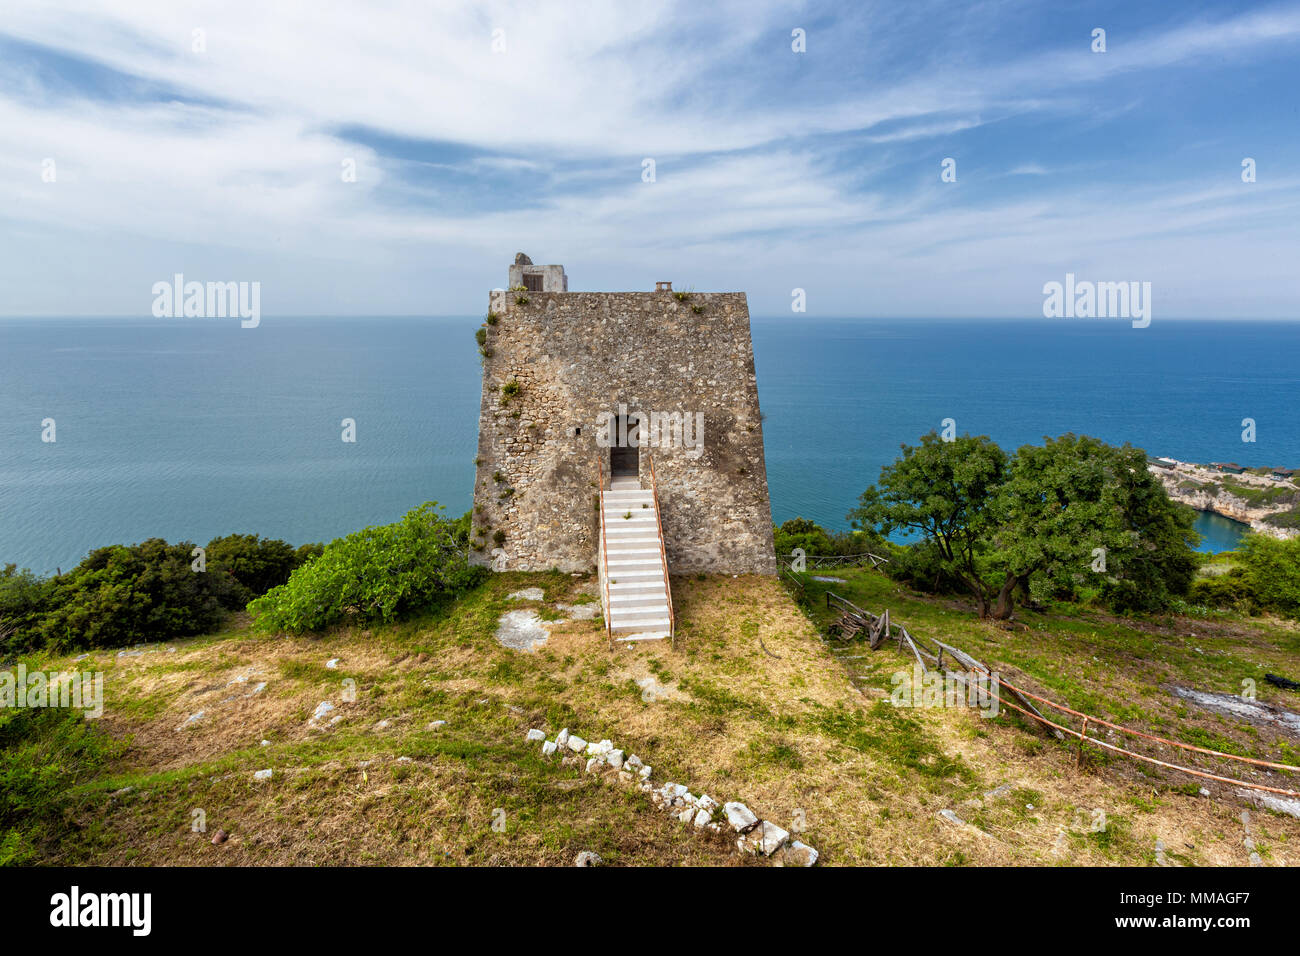 Gargano (Puglia, Italy) - View of the Monte Pucci tower - Stock Image